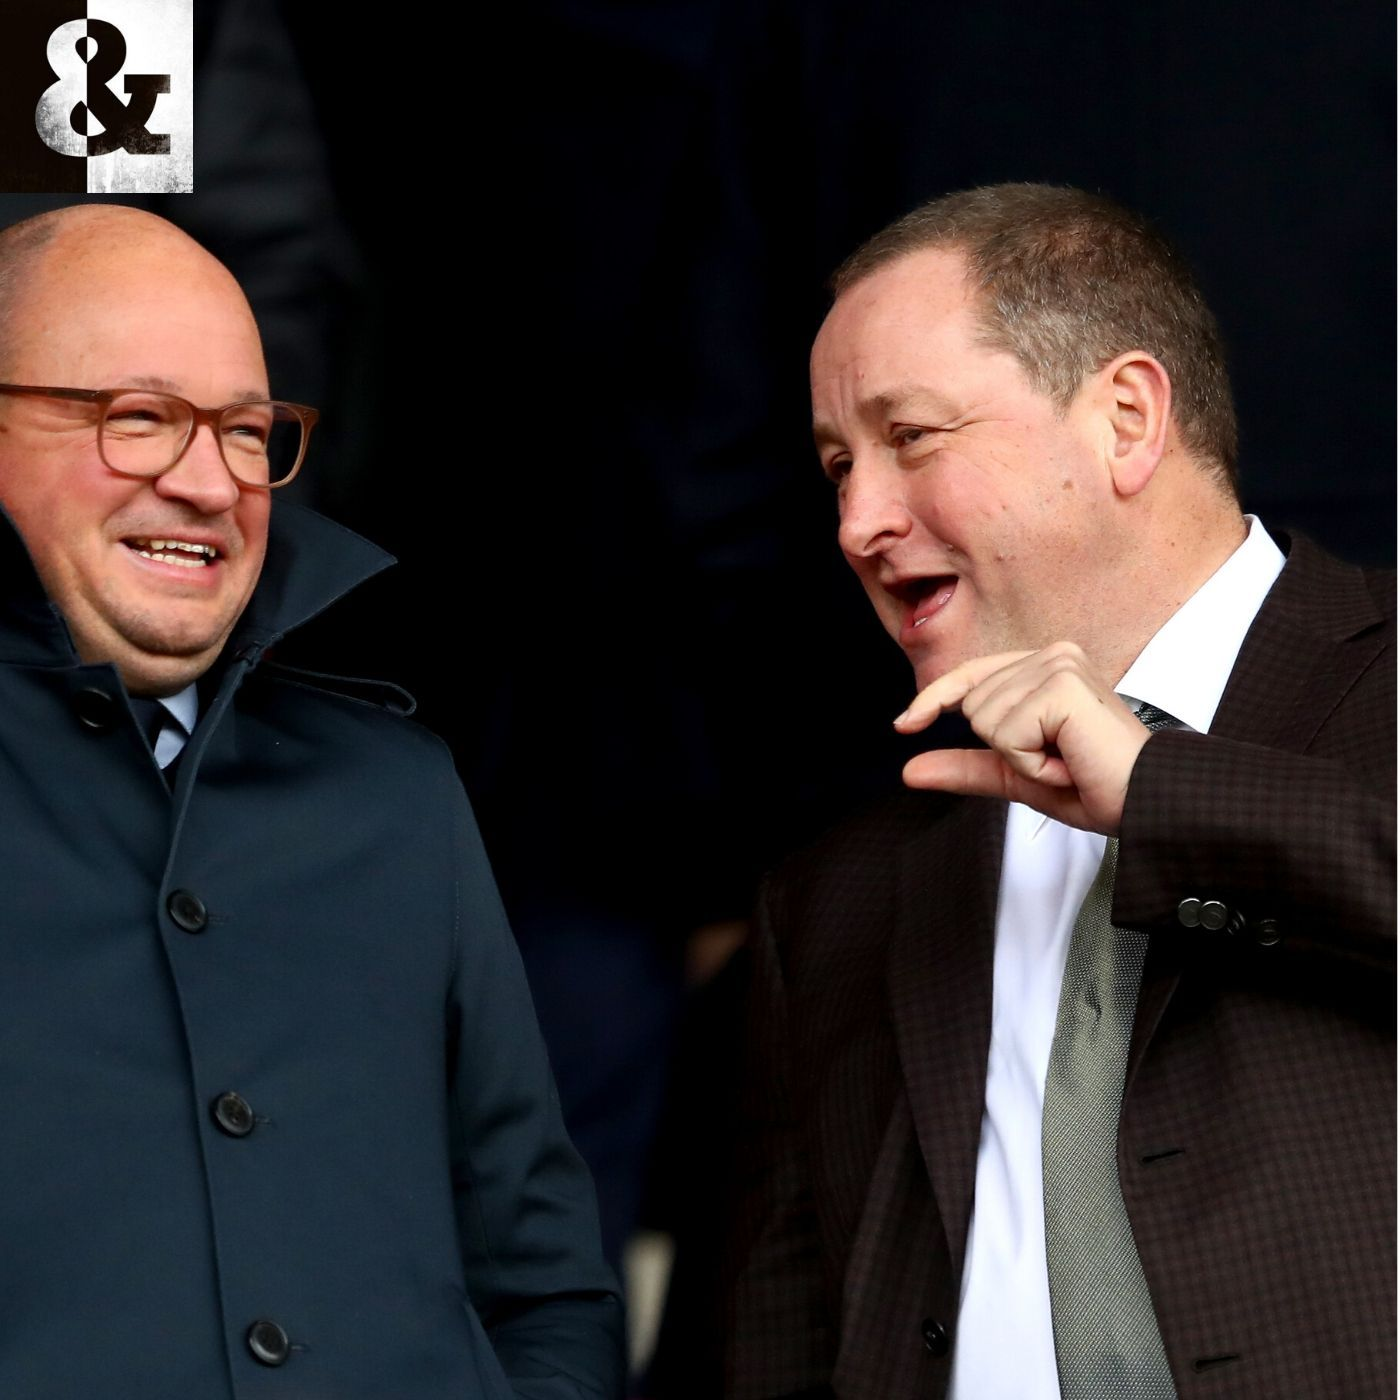 NUFC takeover update 11.05 - 'Those at the club are braced for change'